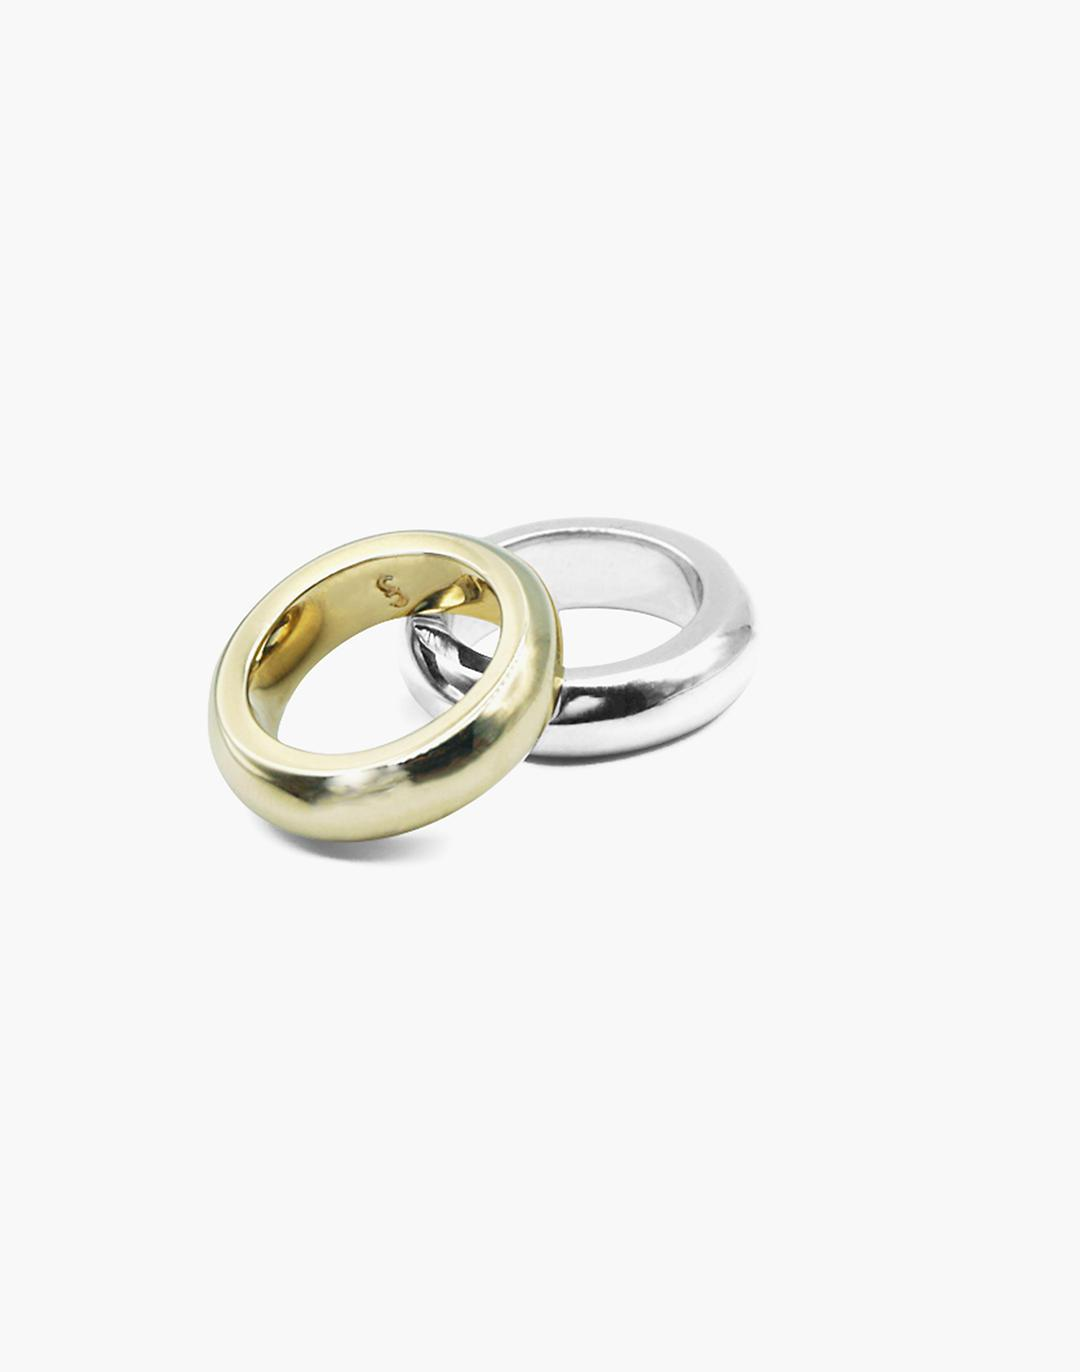 Charlotte Cauwe Studio Brass and Sterling Silver Tube Ring Set